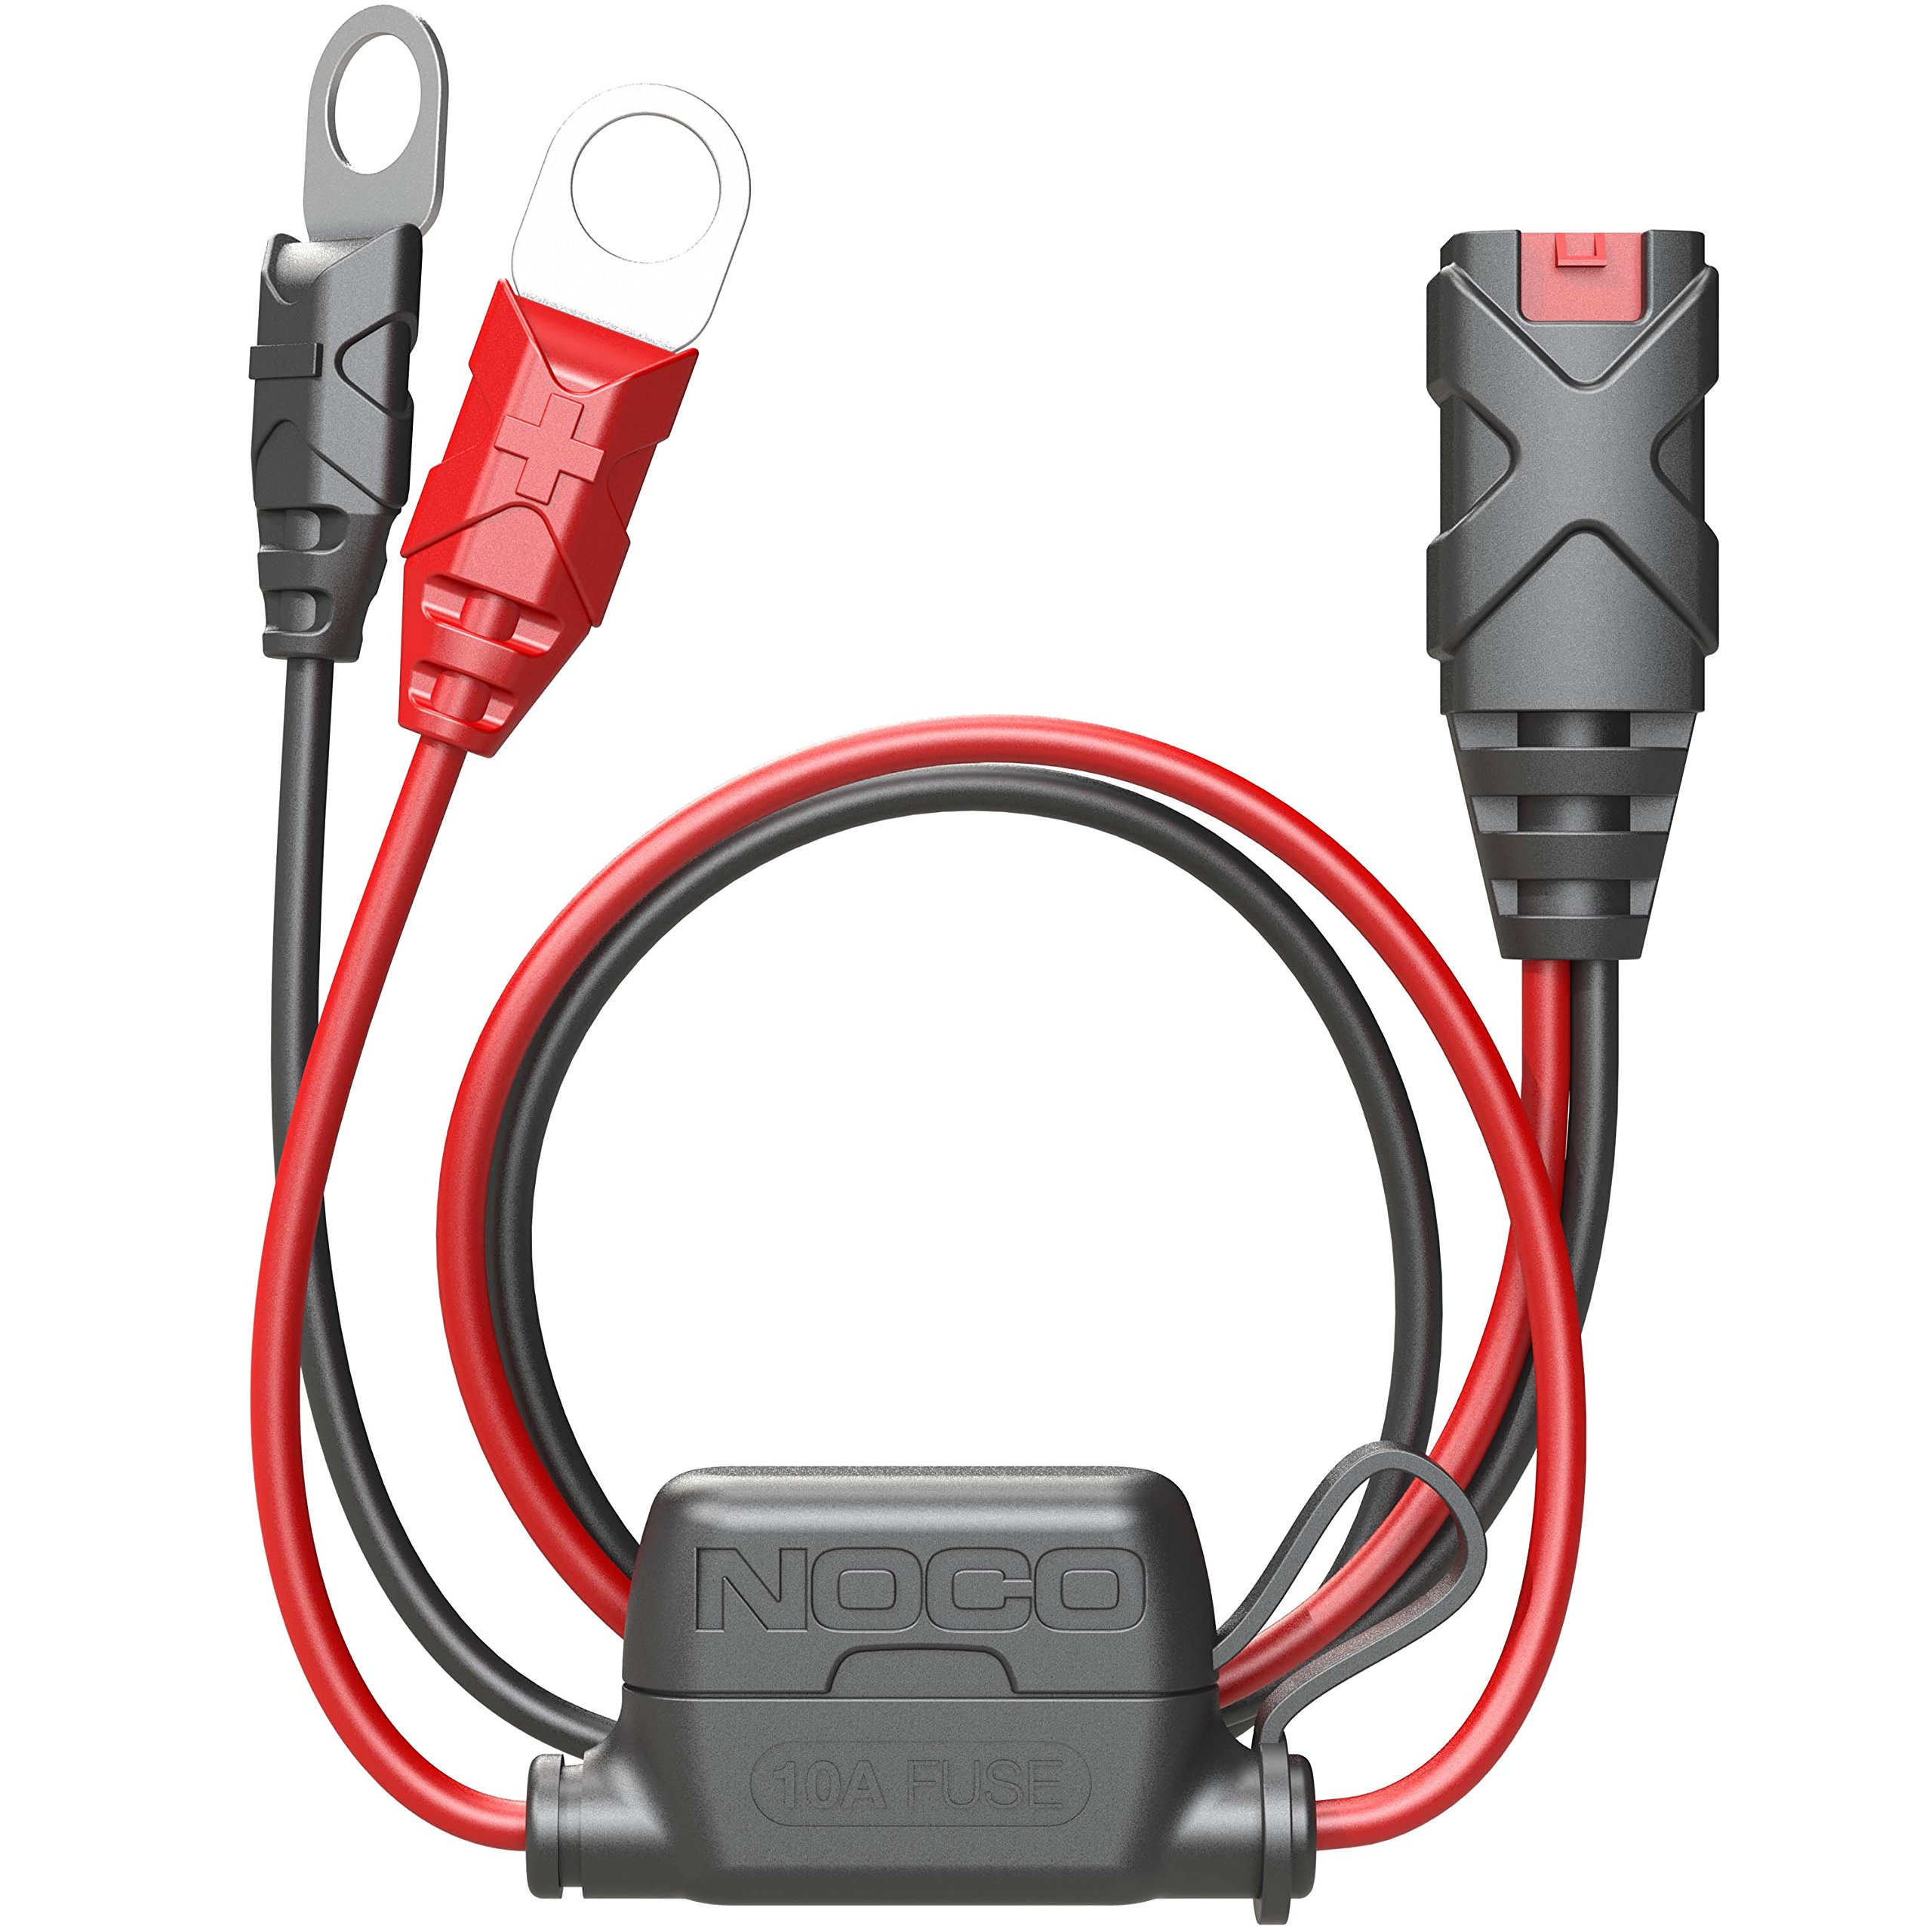 NOCO GC008 X-Connect M10 Eyelet Terminal Accessory For NOCO Genius Smart Battery Chargers